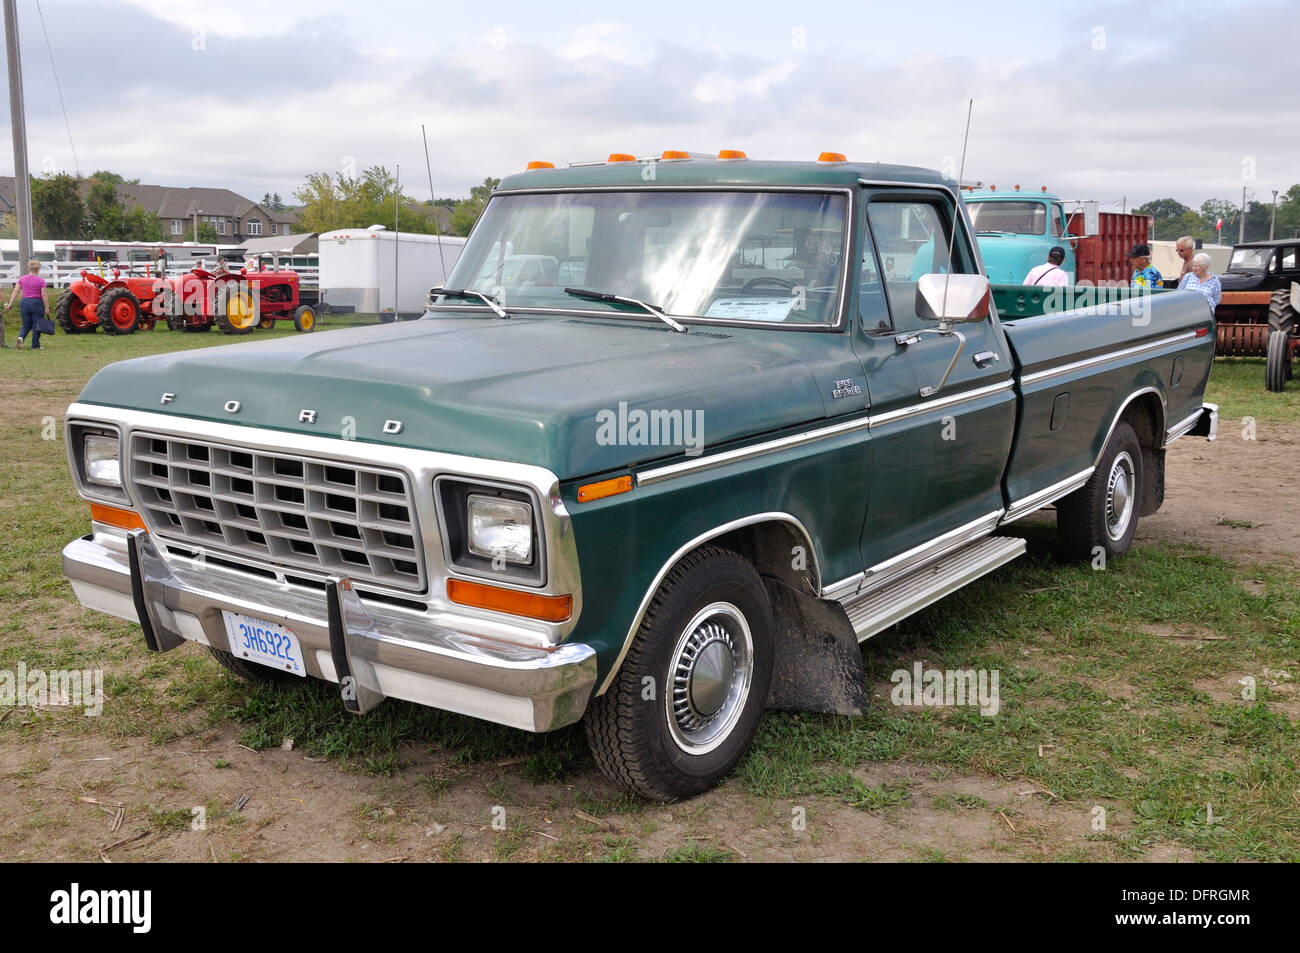 Old Ford truck on display at Milton fairground, Ontario, Canada ...